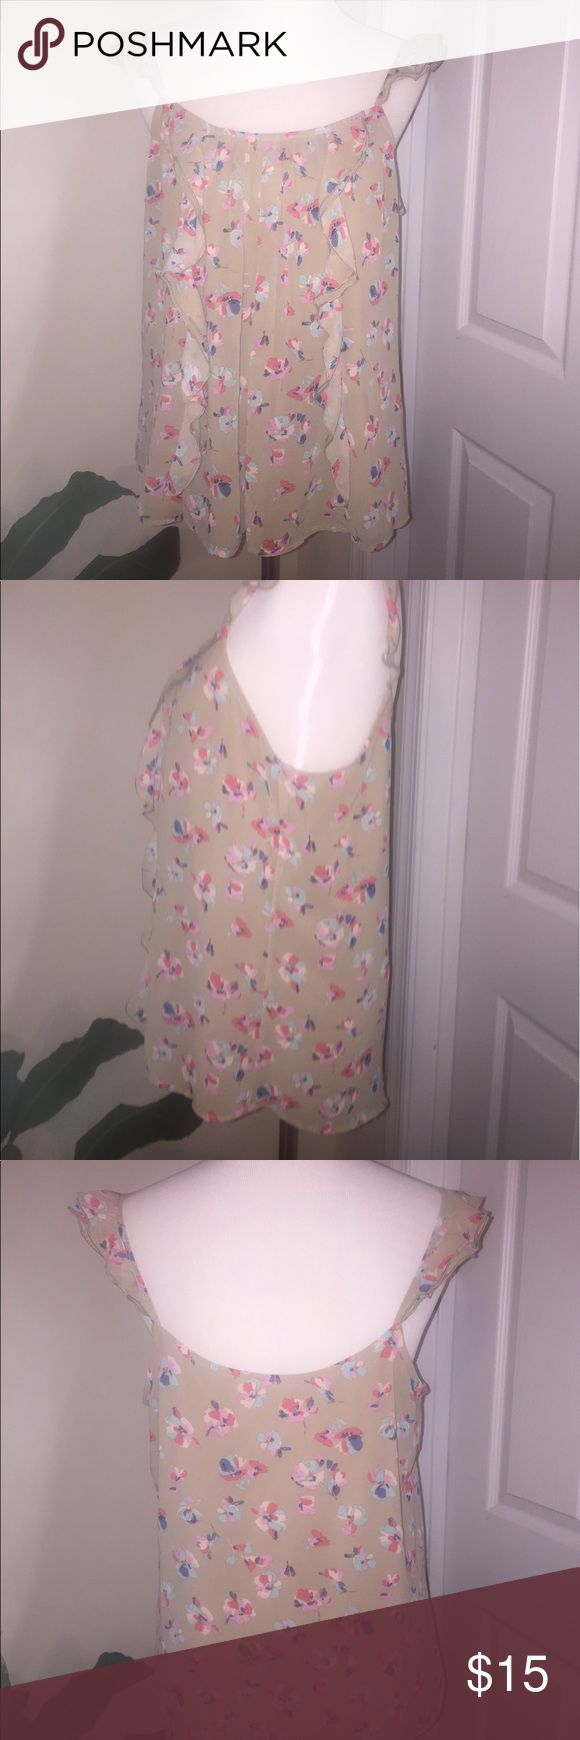 Ruffle Strap Floral Cami Tank No rips or stains. Lined cami. LC Lauren Conrad Tops Camisoles